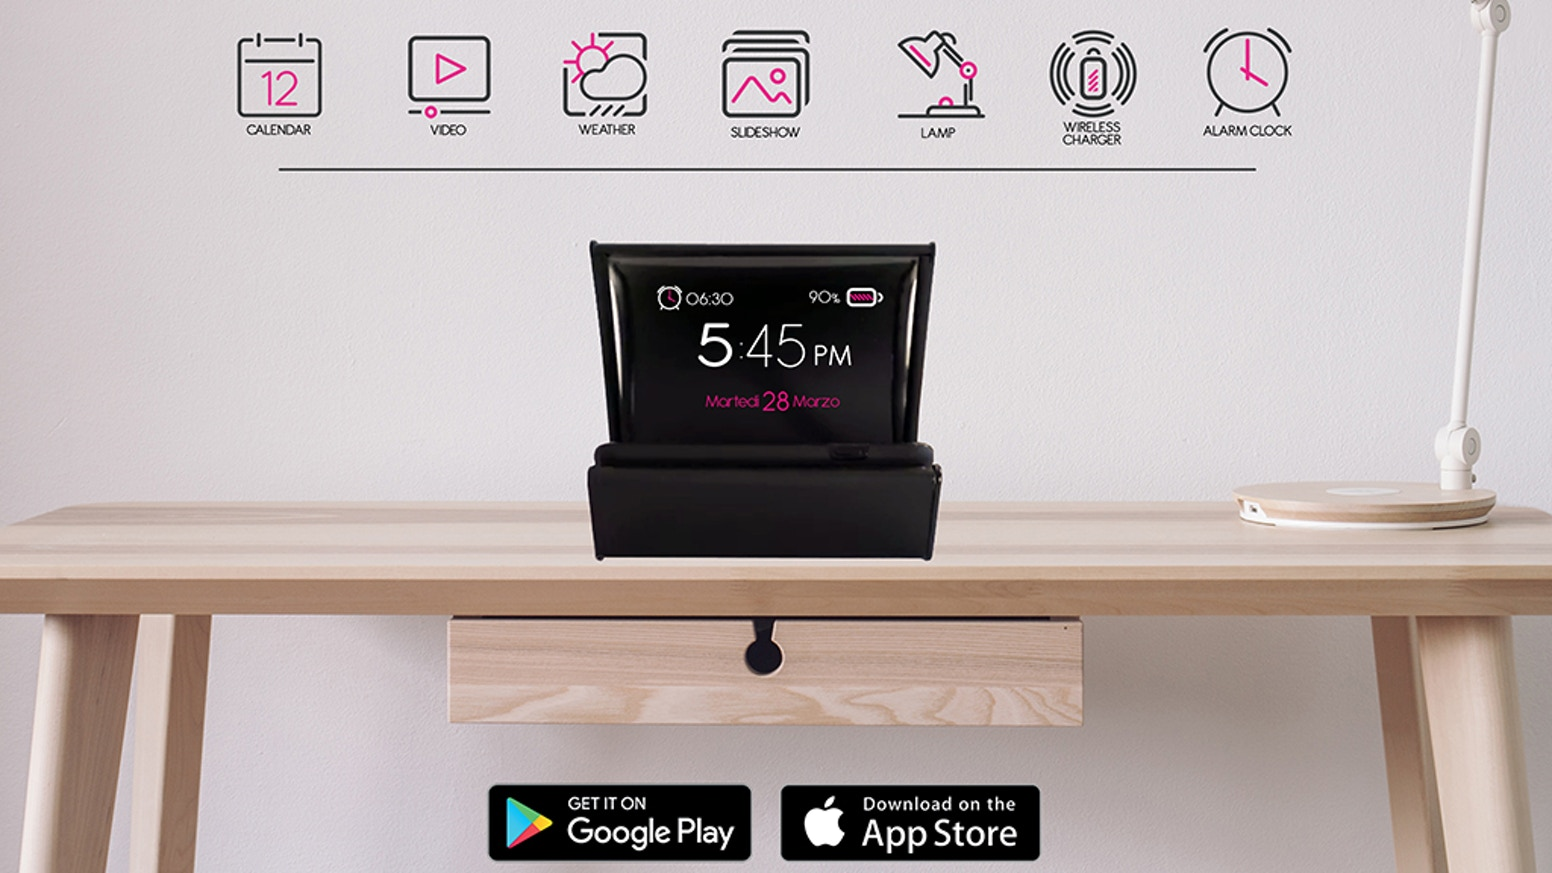 Much more than just a wireless charger for your smartphone : Alarm - Cinema - Clock - Date - Games - NiceDay - Photoslider - Weather